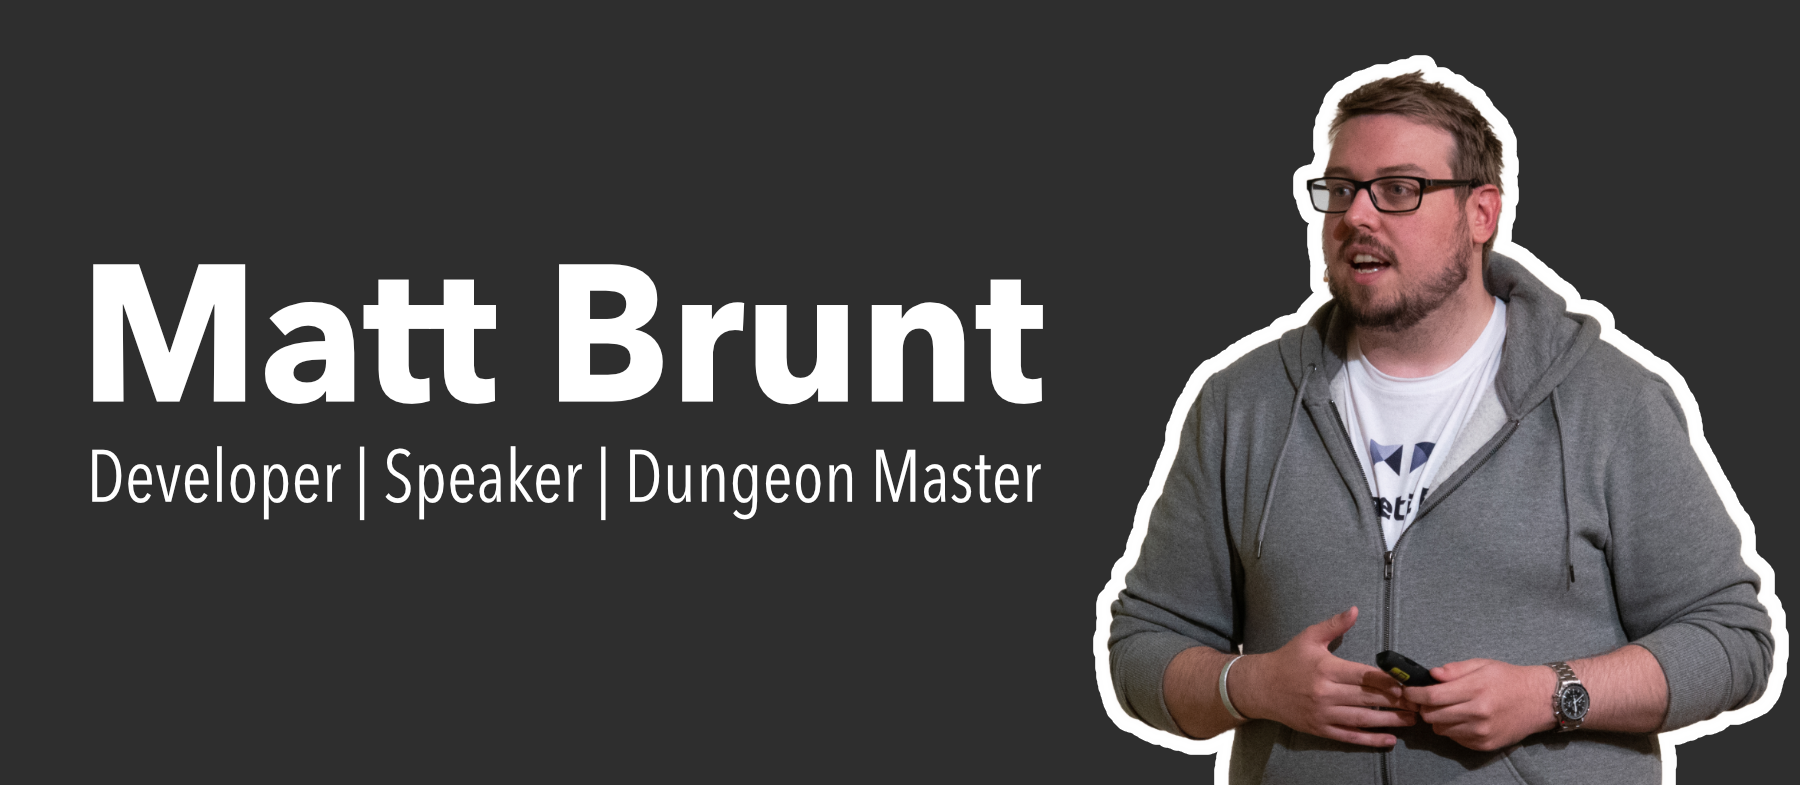 Graphic of Matt Brunt giving a talk, outlined in white. Text next to him says Matt Brunt, Developer, Speaker, Dungeon Master